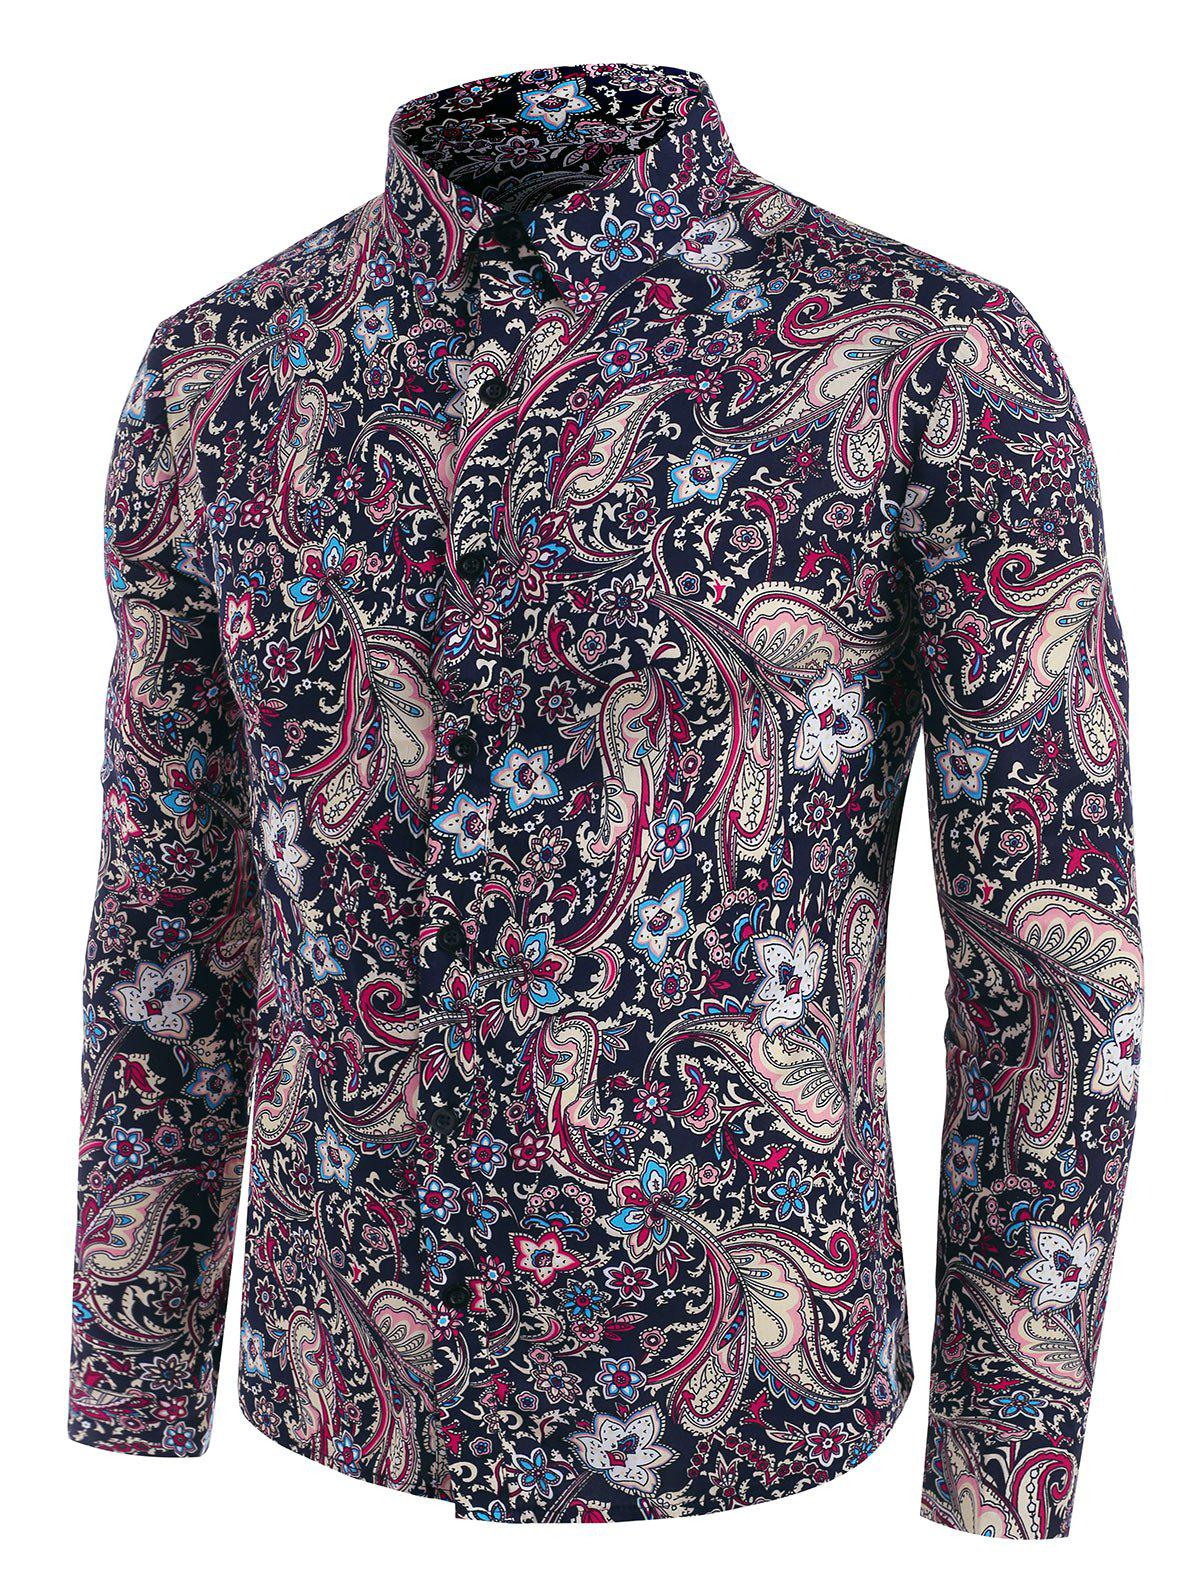 Floral Paisley Print Button Down Shirt - DEEP BLUE 2XL